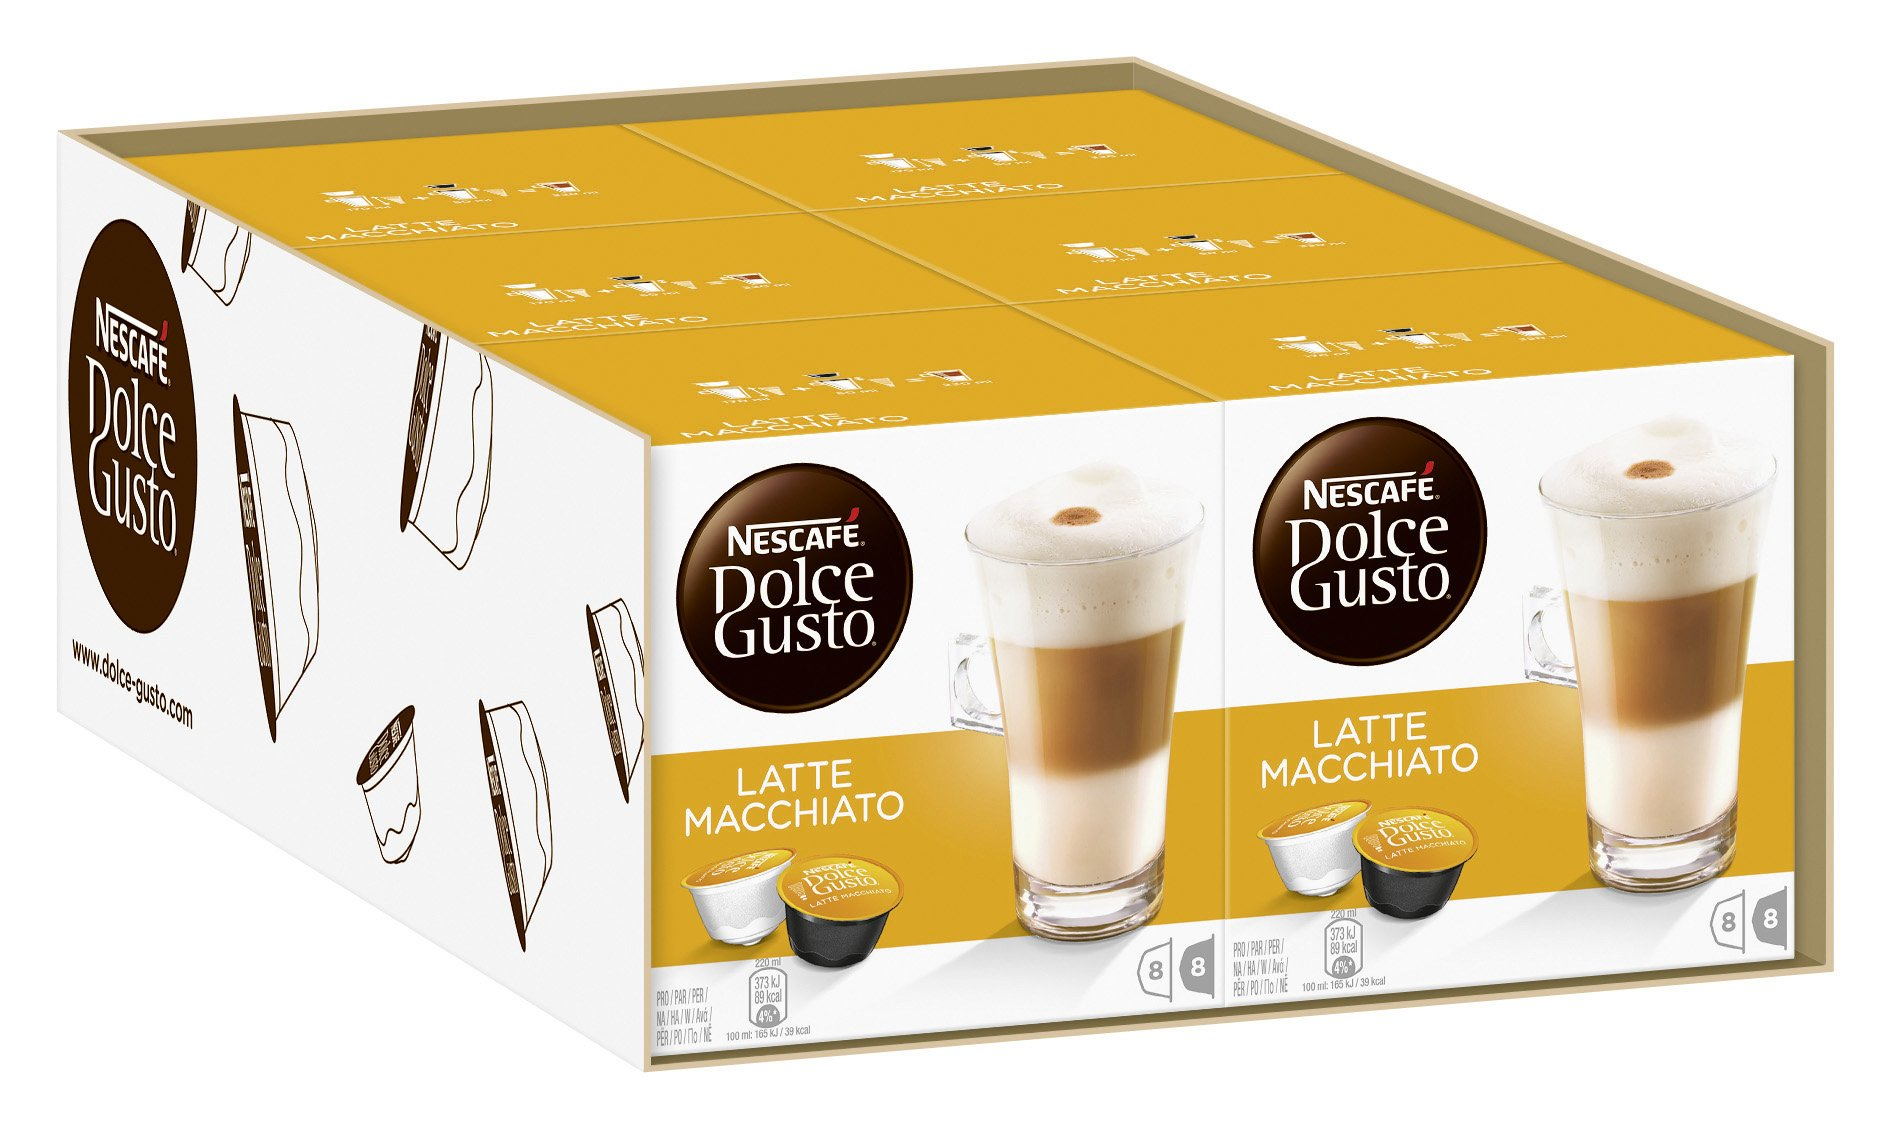 Nescafé Dolce Gusto Latte coffee pods and capsules